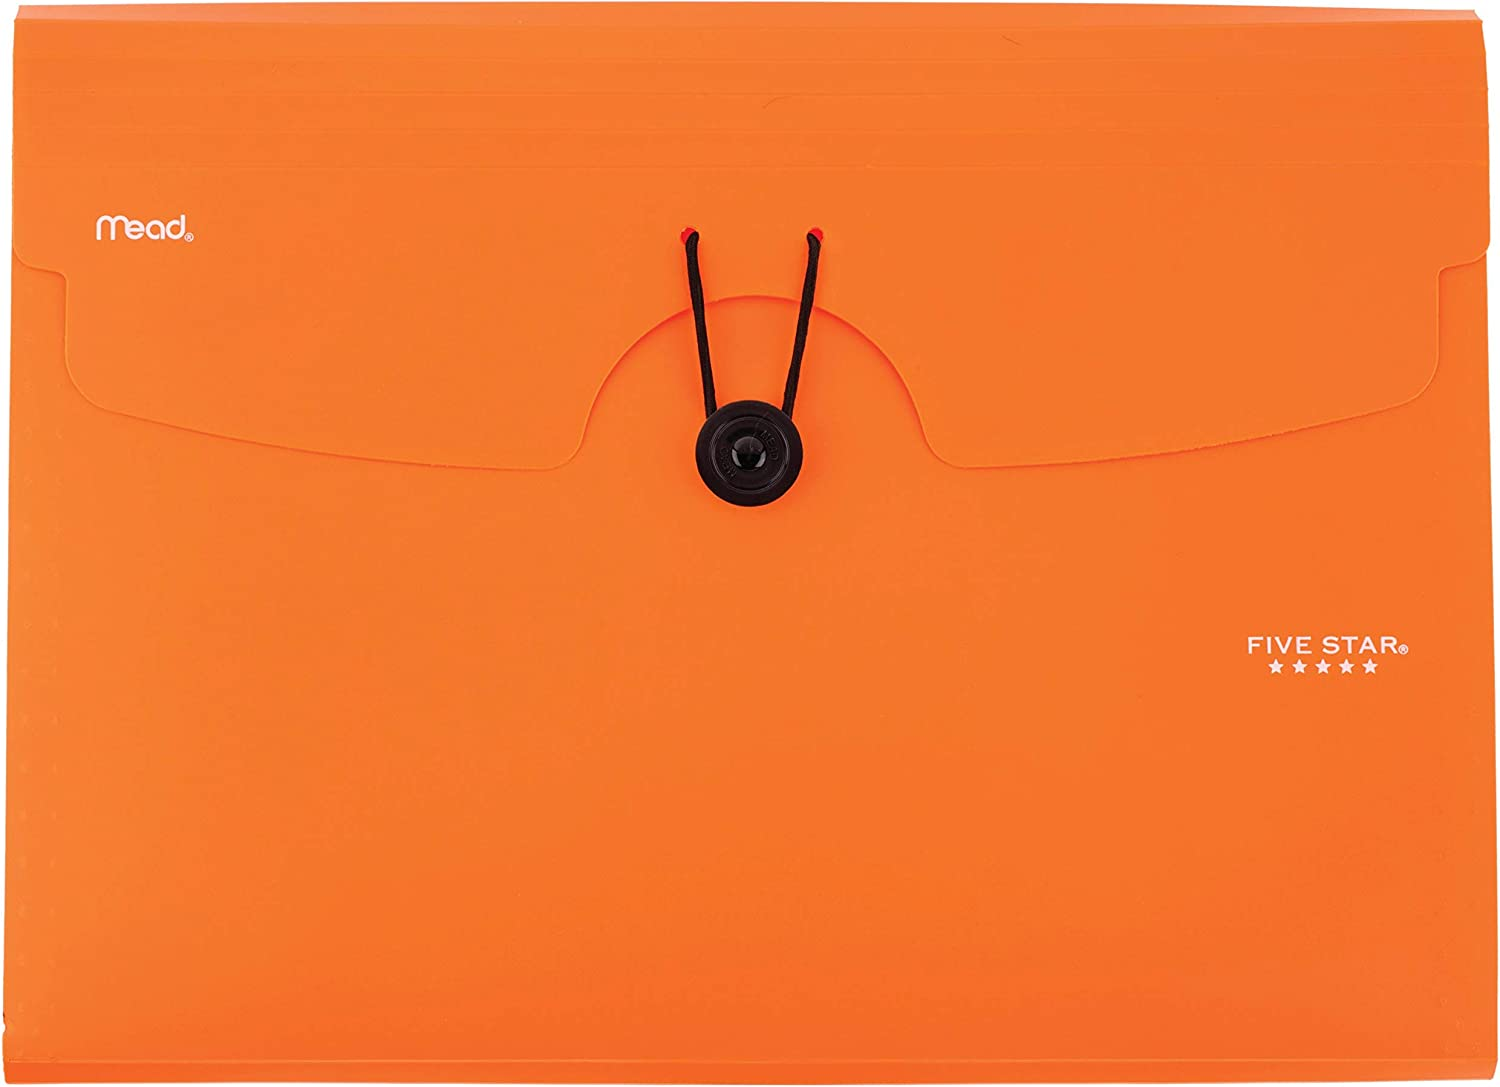 Five Star 6-Pocket Expanding File Organizer, Plastic Expandable Letter Size File Folders with Pockets, Home Office Supplies, Portable Paper Organizer for Receipts, Bills, Documents, Orange (72923)